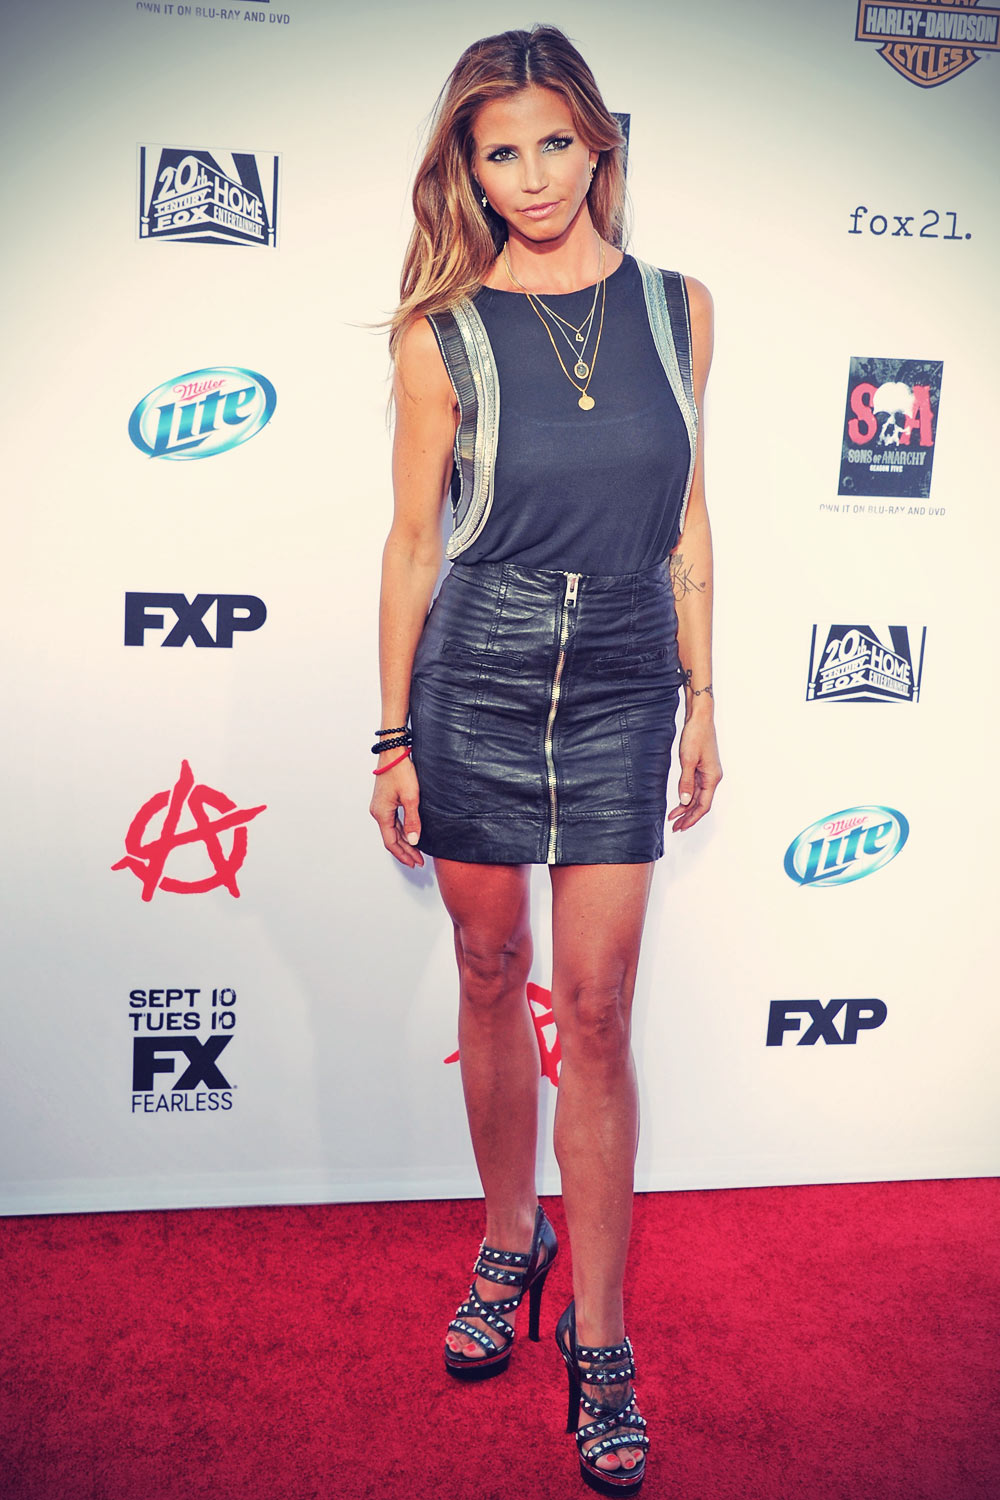 Charisma Carpenter attends Sons Of Anarchy Season 6 Premiere